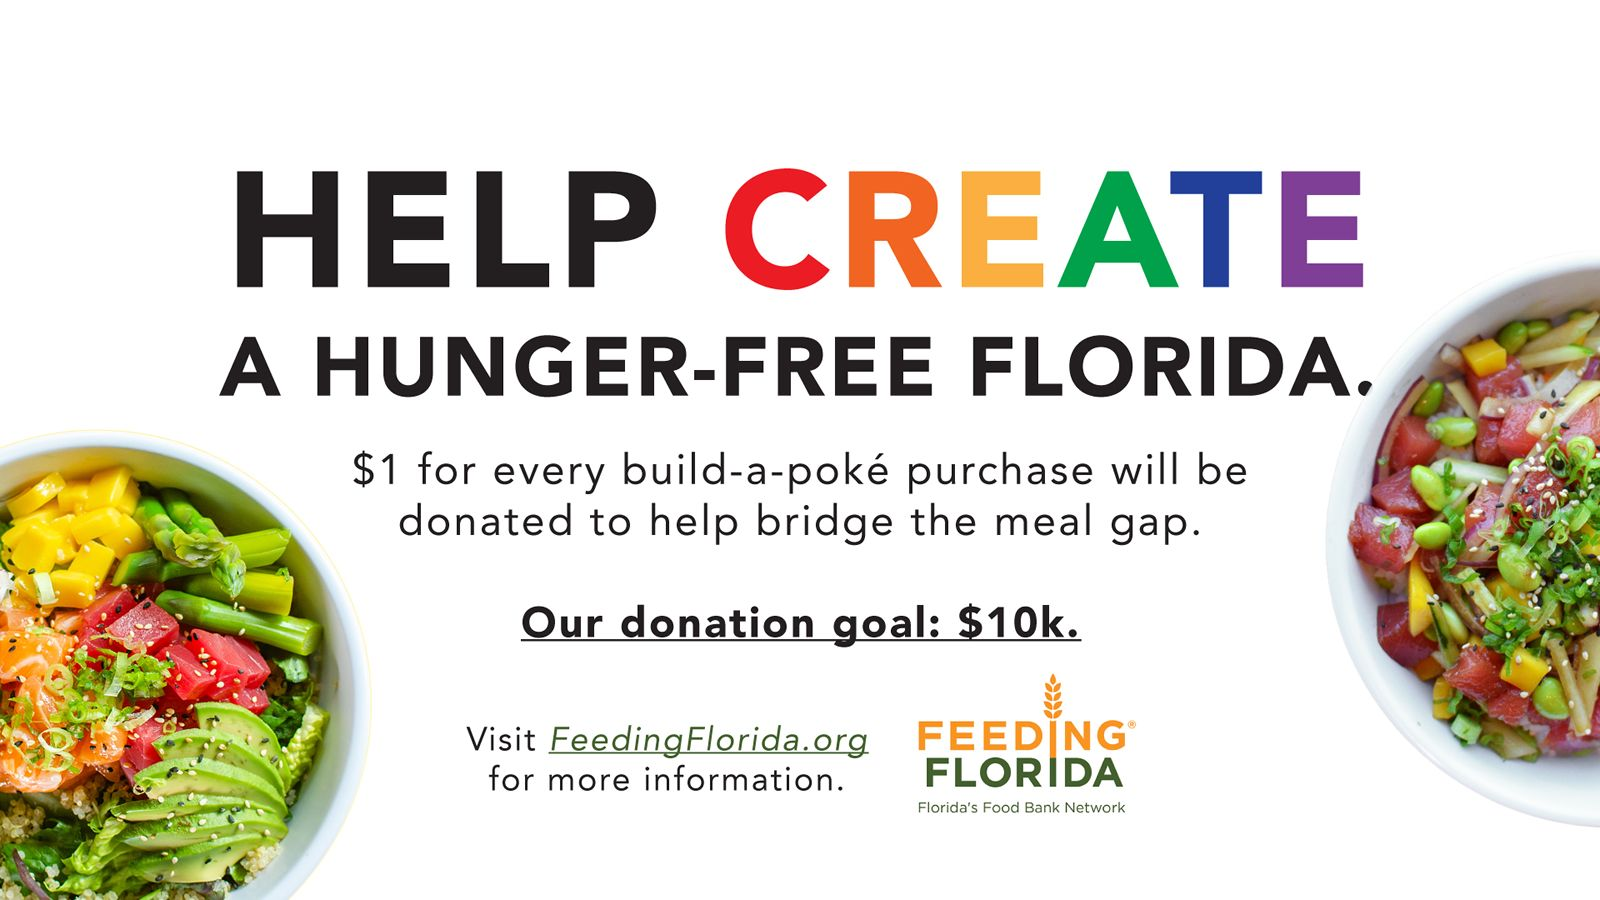 Bento Asian Kitchen + Sushi Announces Statewide Donation Campaign for Feeding Florida